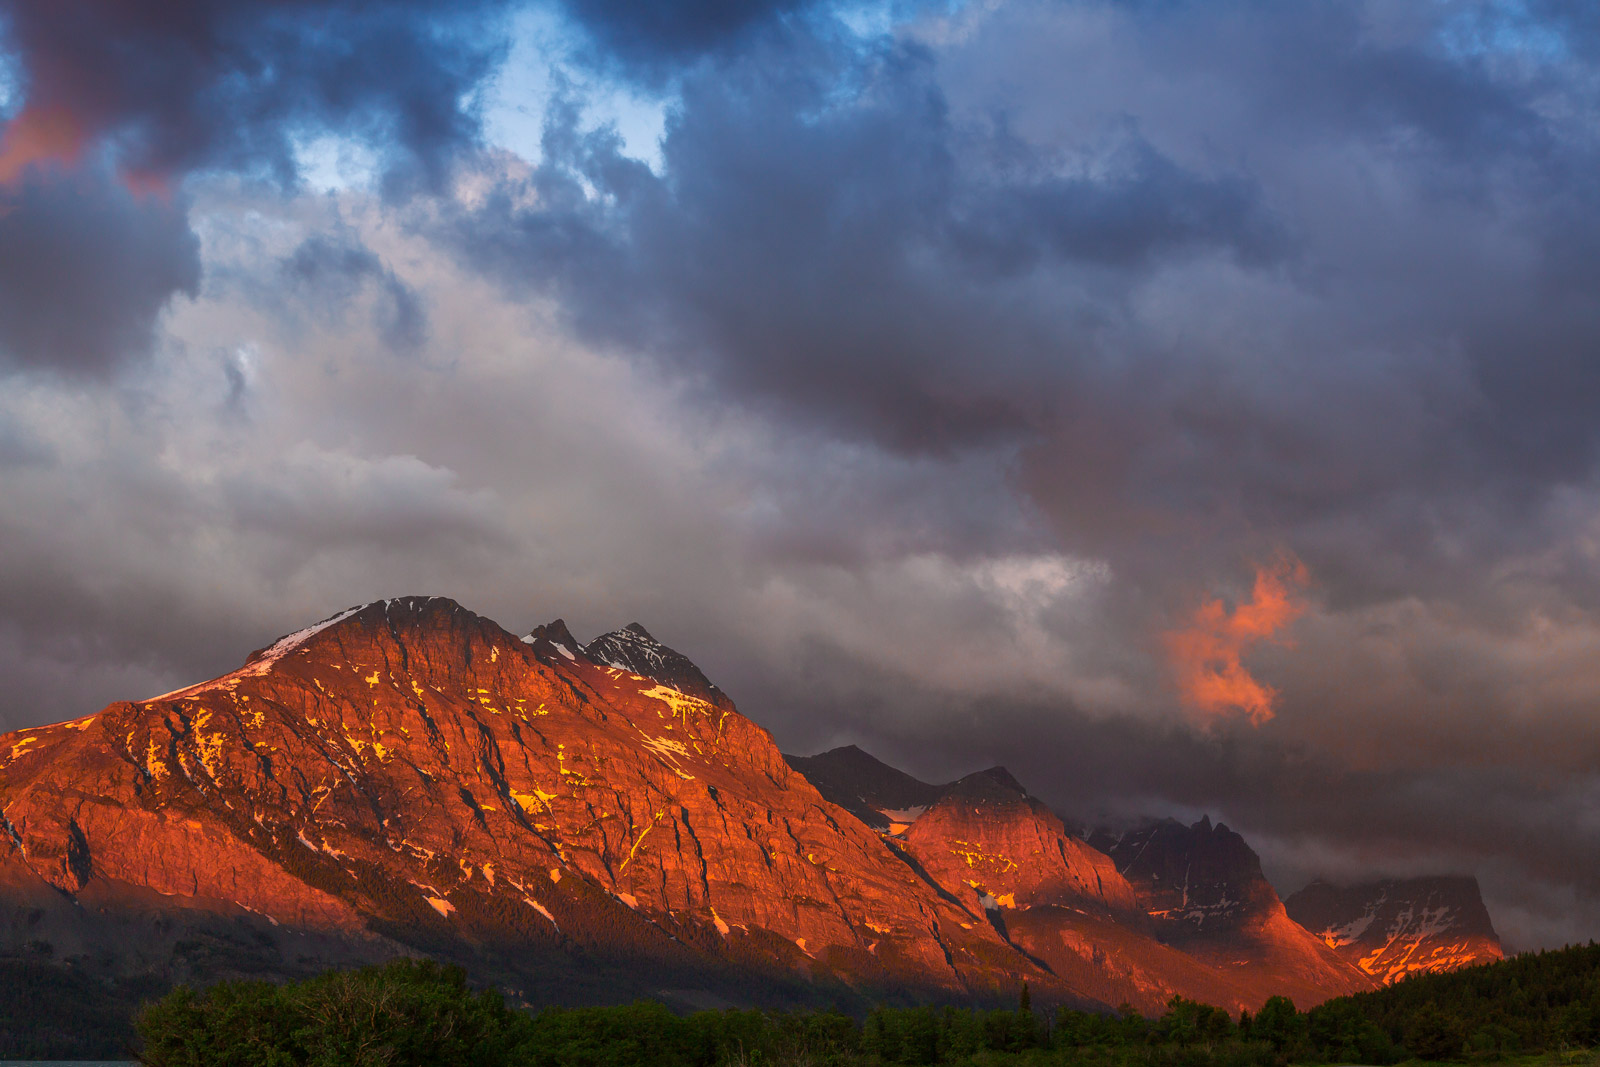 A Limited Edition, Fine Art photograph of spectacular sunrise light and storm clouds on the mountains at Glacier National Park...